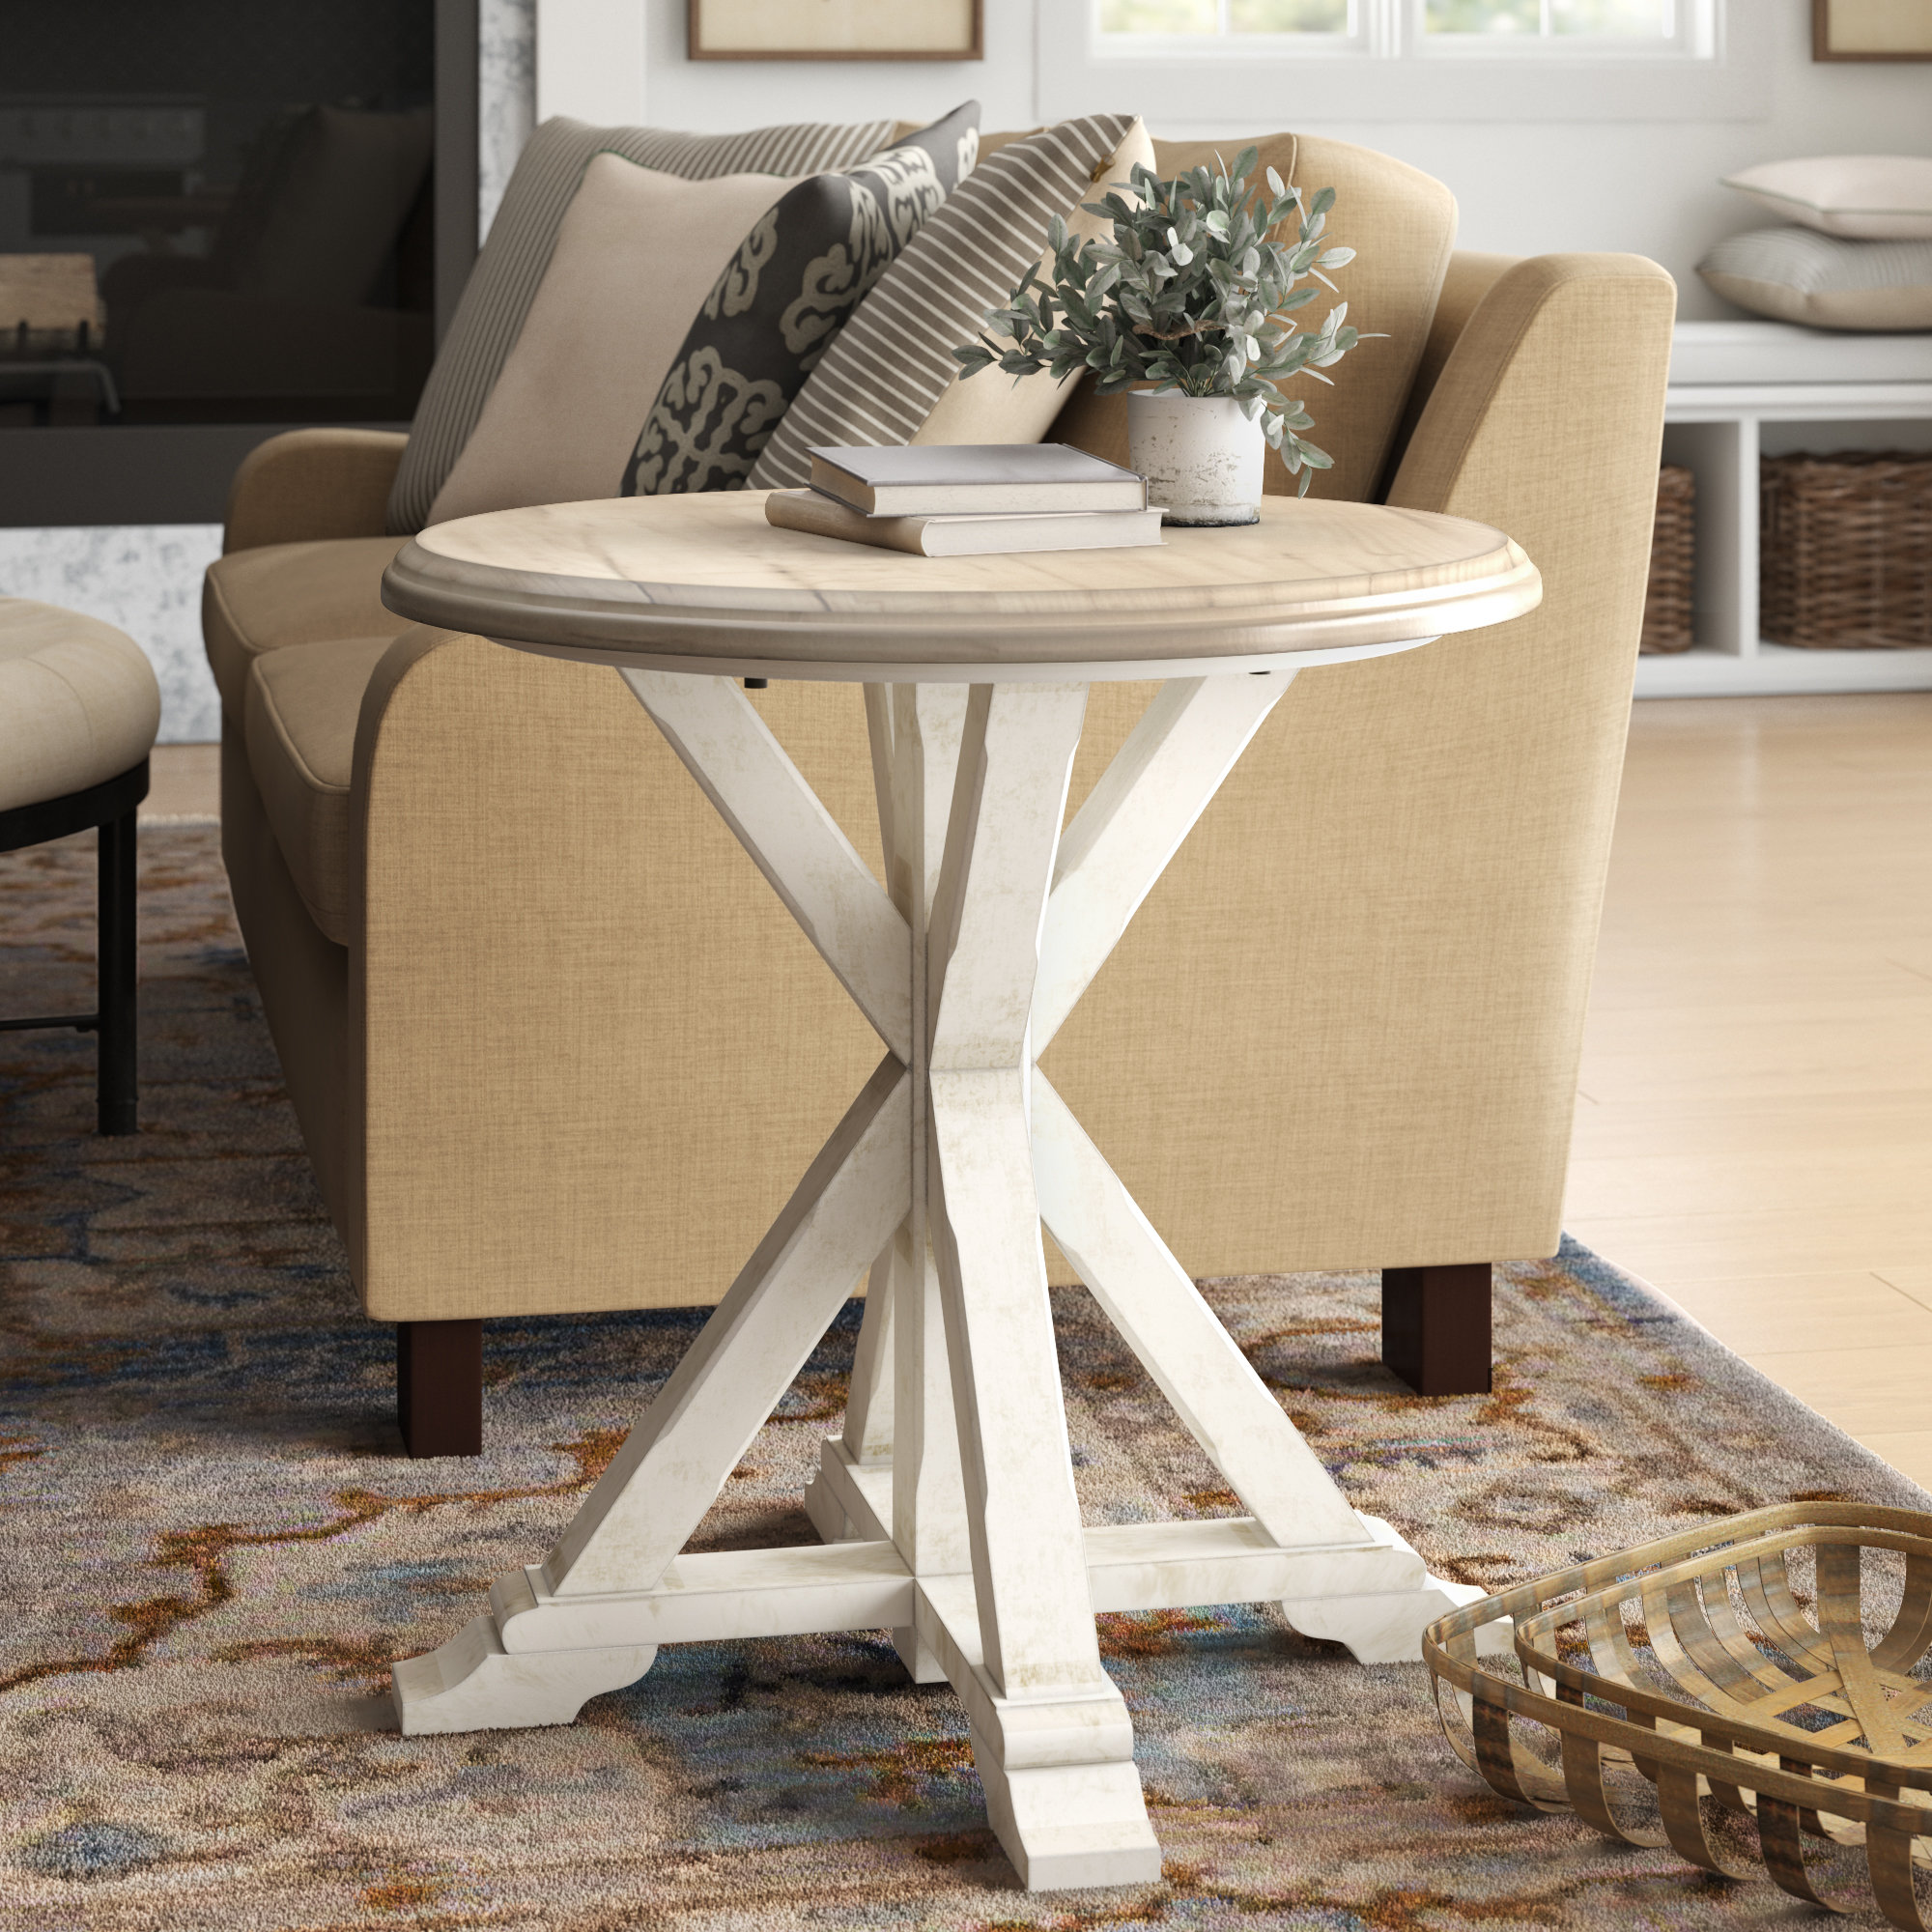 birch lane heritage liana end table reviews modern farmhouse tables riverside furniture bedroom sets what pallet ashley ott liberty cabin fever round rustic wood and glass coffee